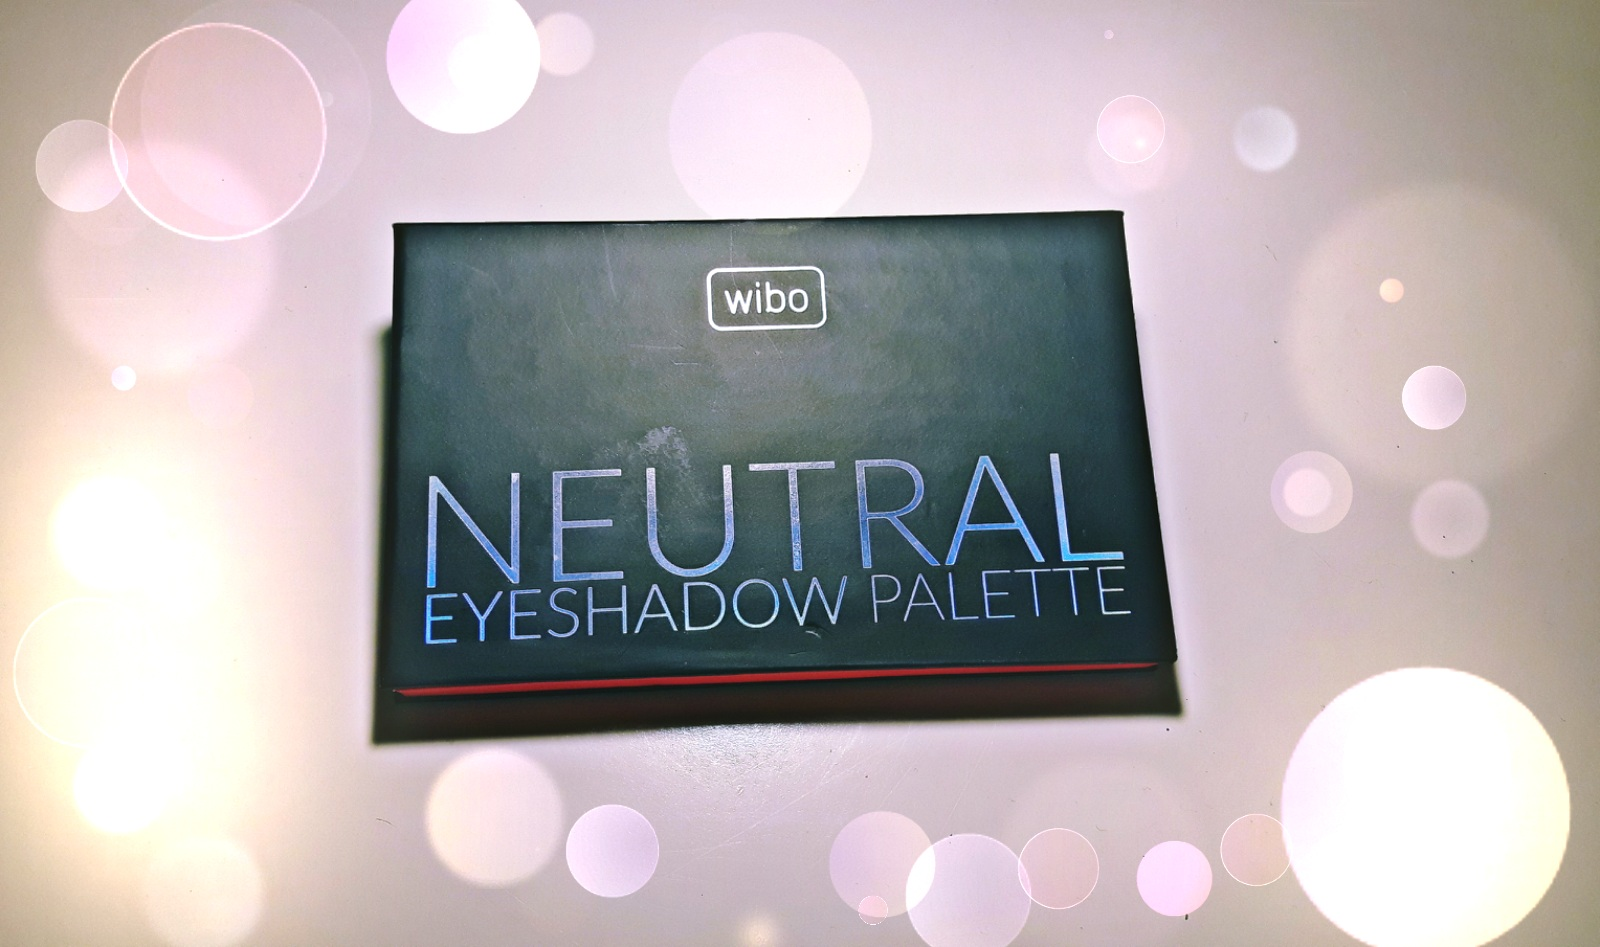 WIBO - neutral eyeshadow palette